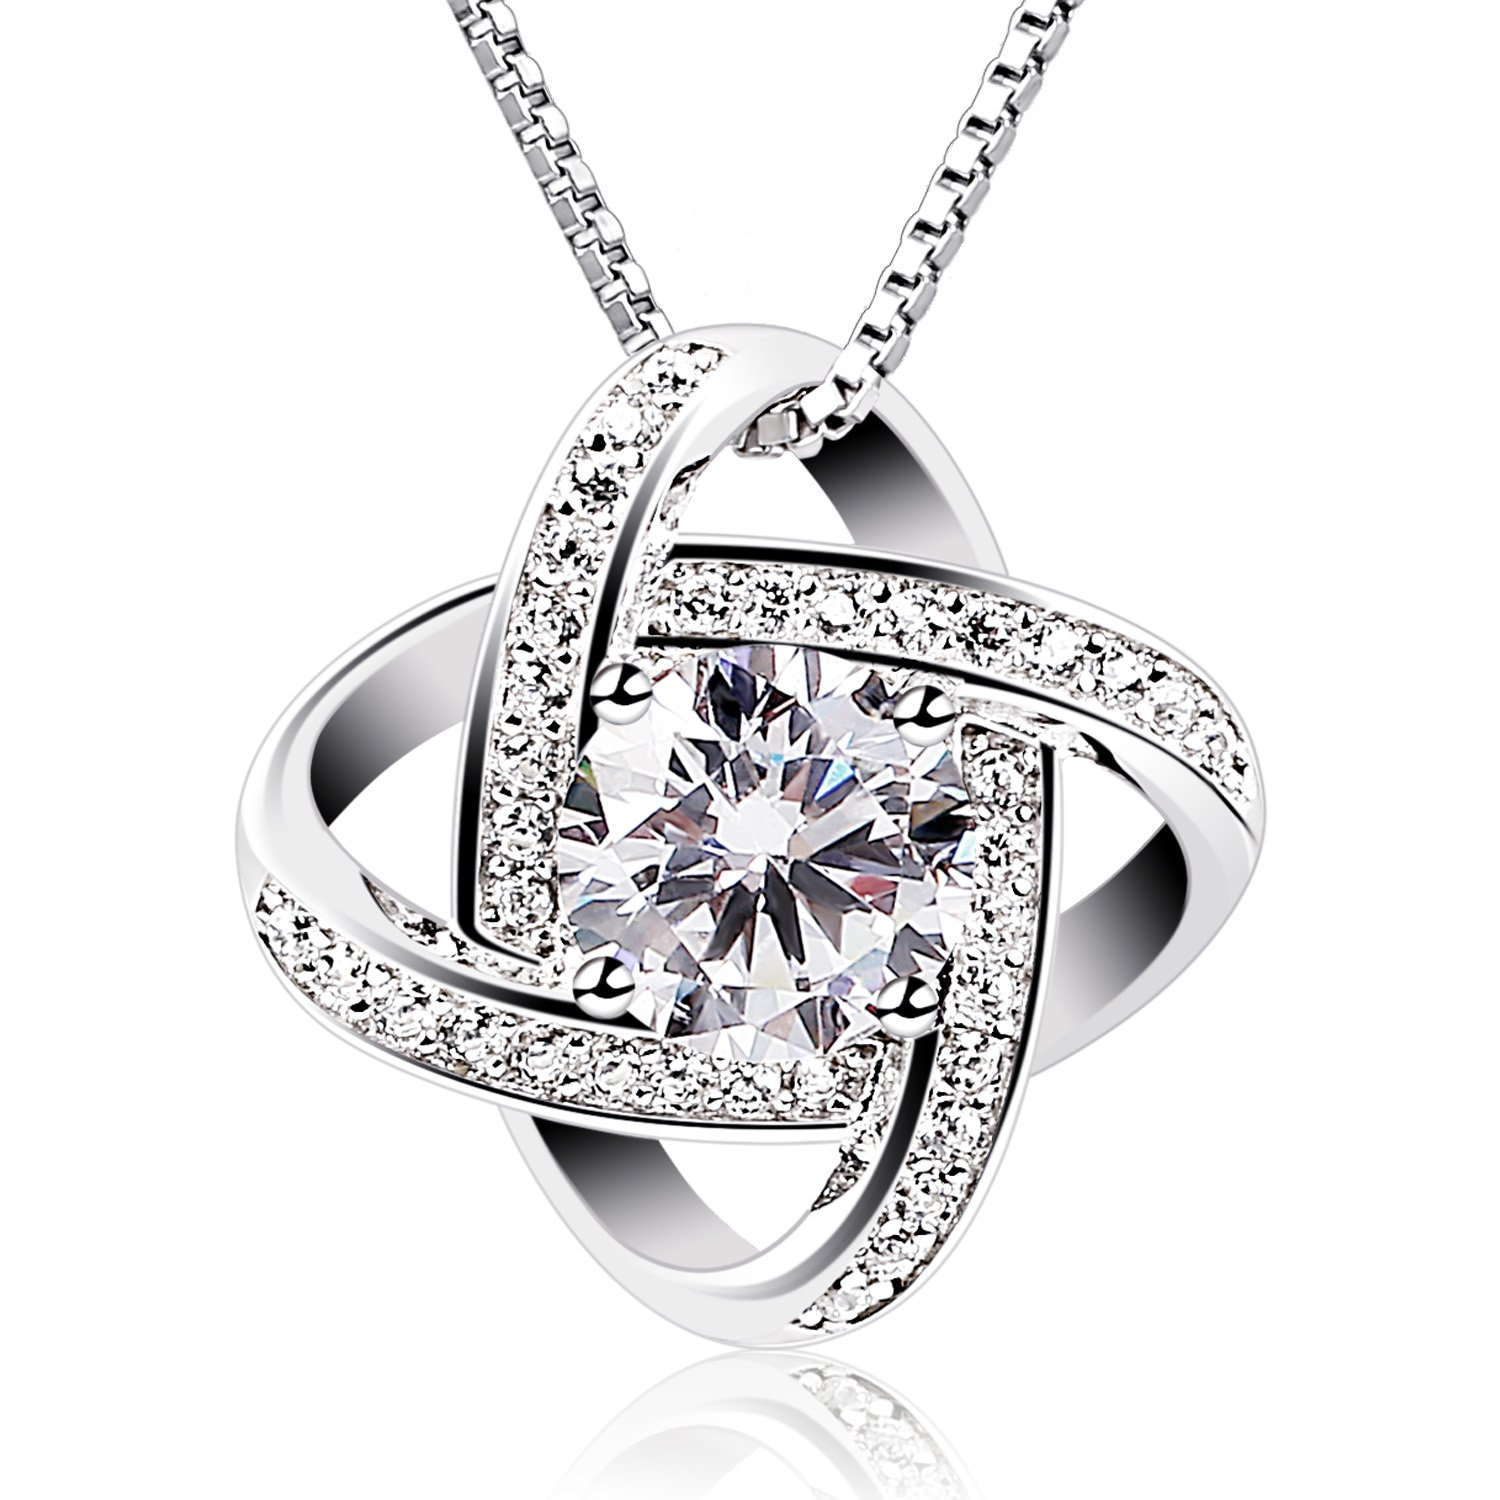 B.Catcher Sterling Silver Necklaces 925 Silver Cubic Zirconia Pendant Gemini Necklace Fine Jewellery Gifts product image